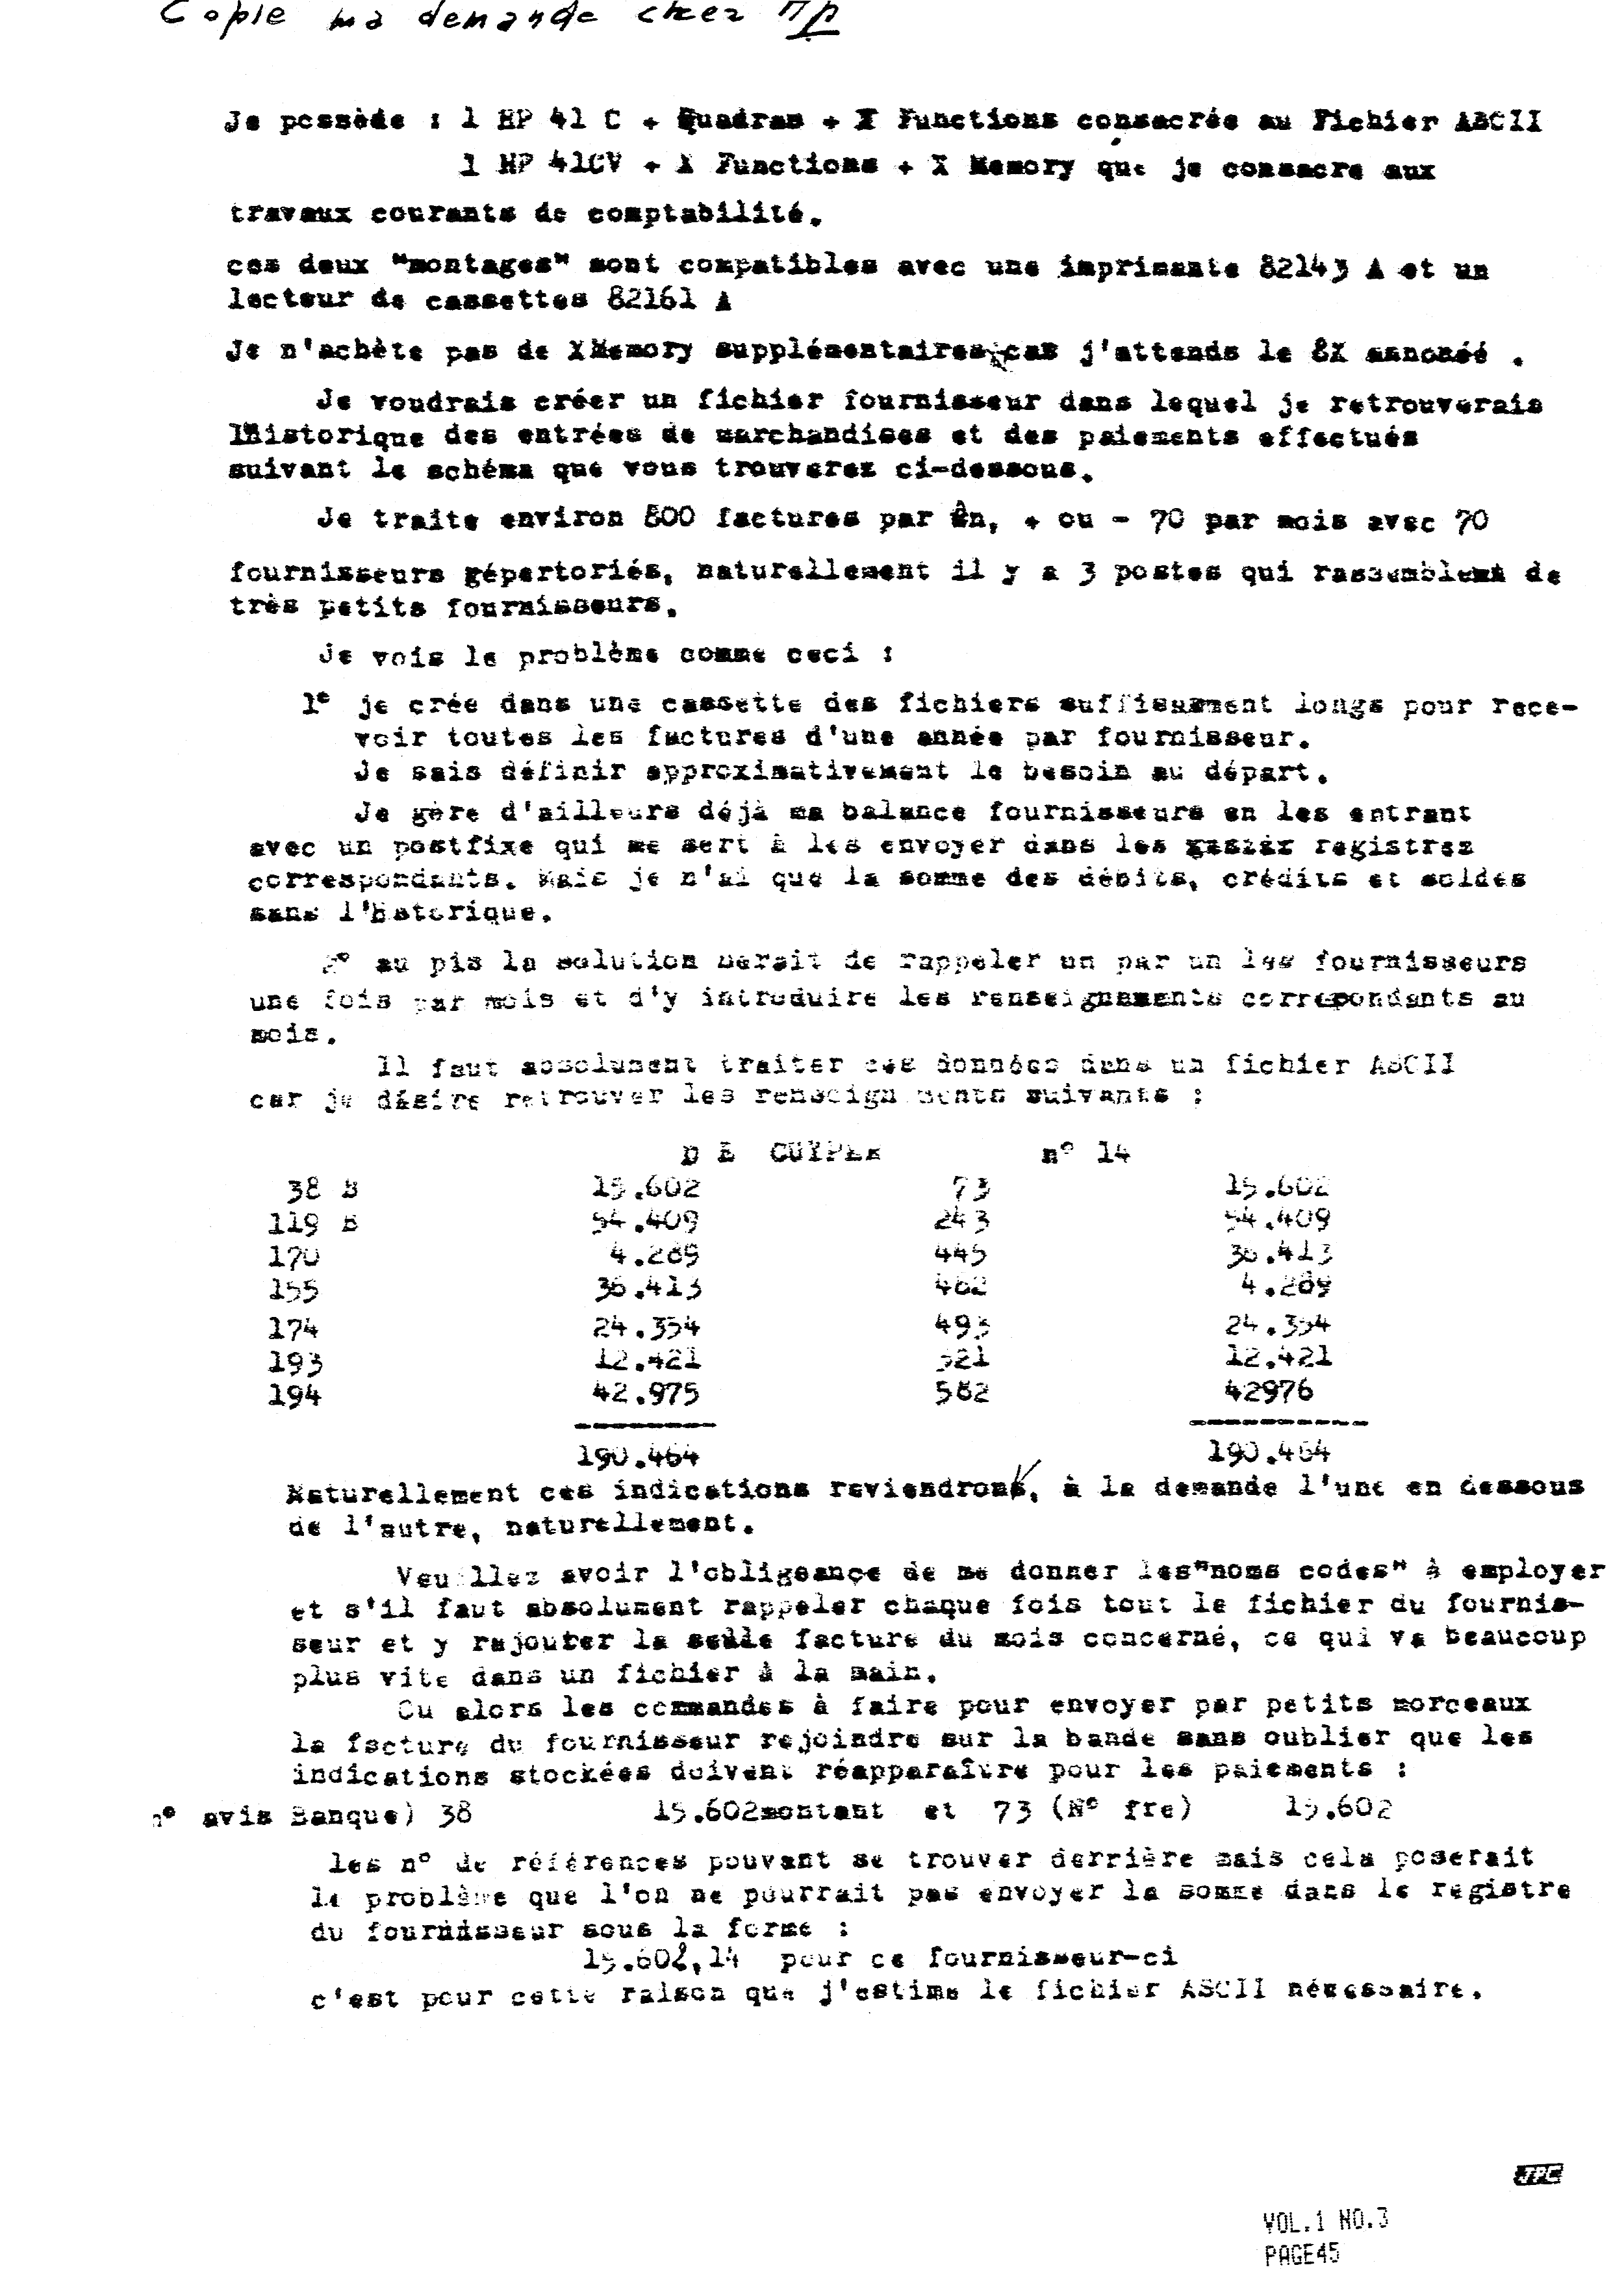 Jp-3-page-45-1000